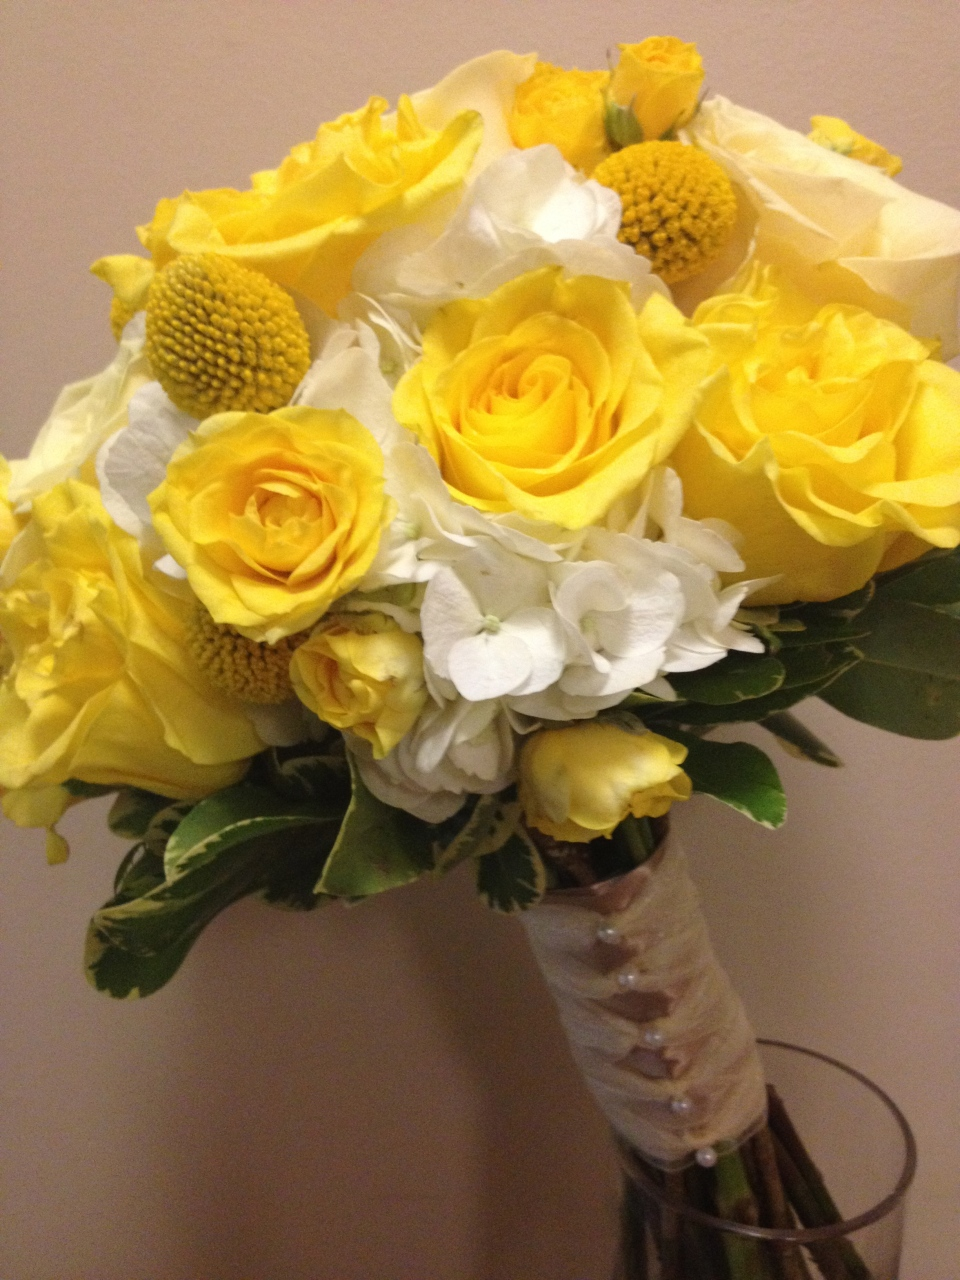 Yellow bridal bouquet of hydrangea, roses, spray roses & craspedia